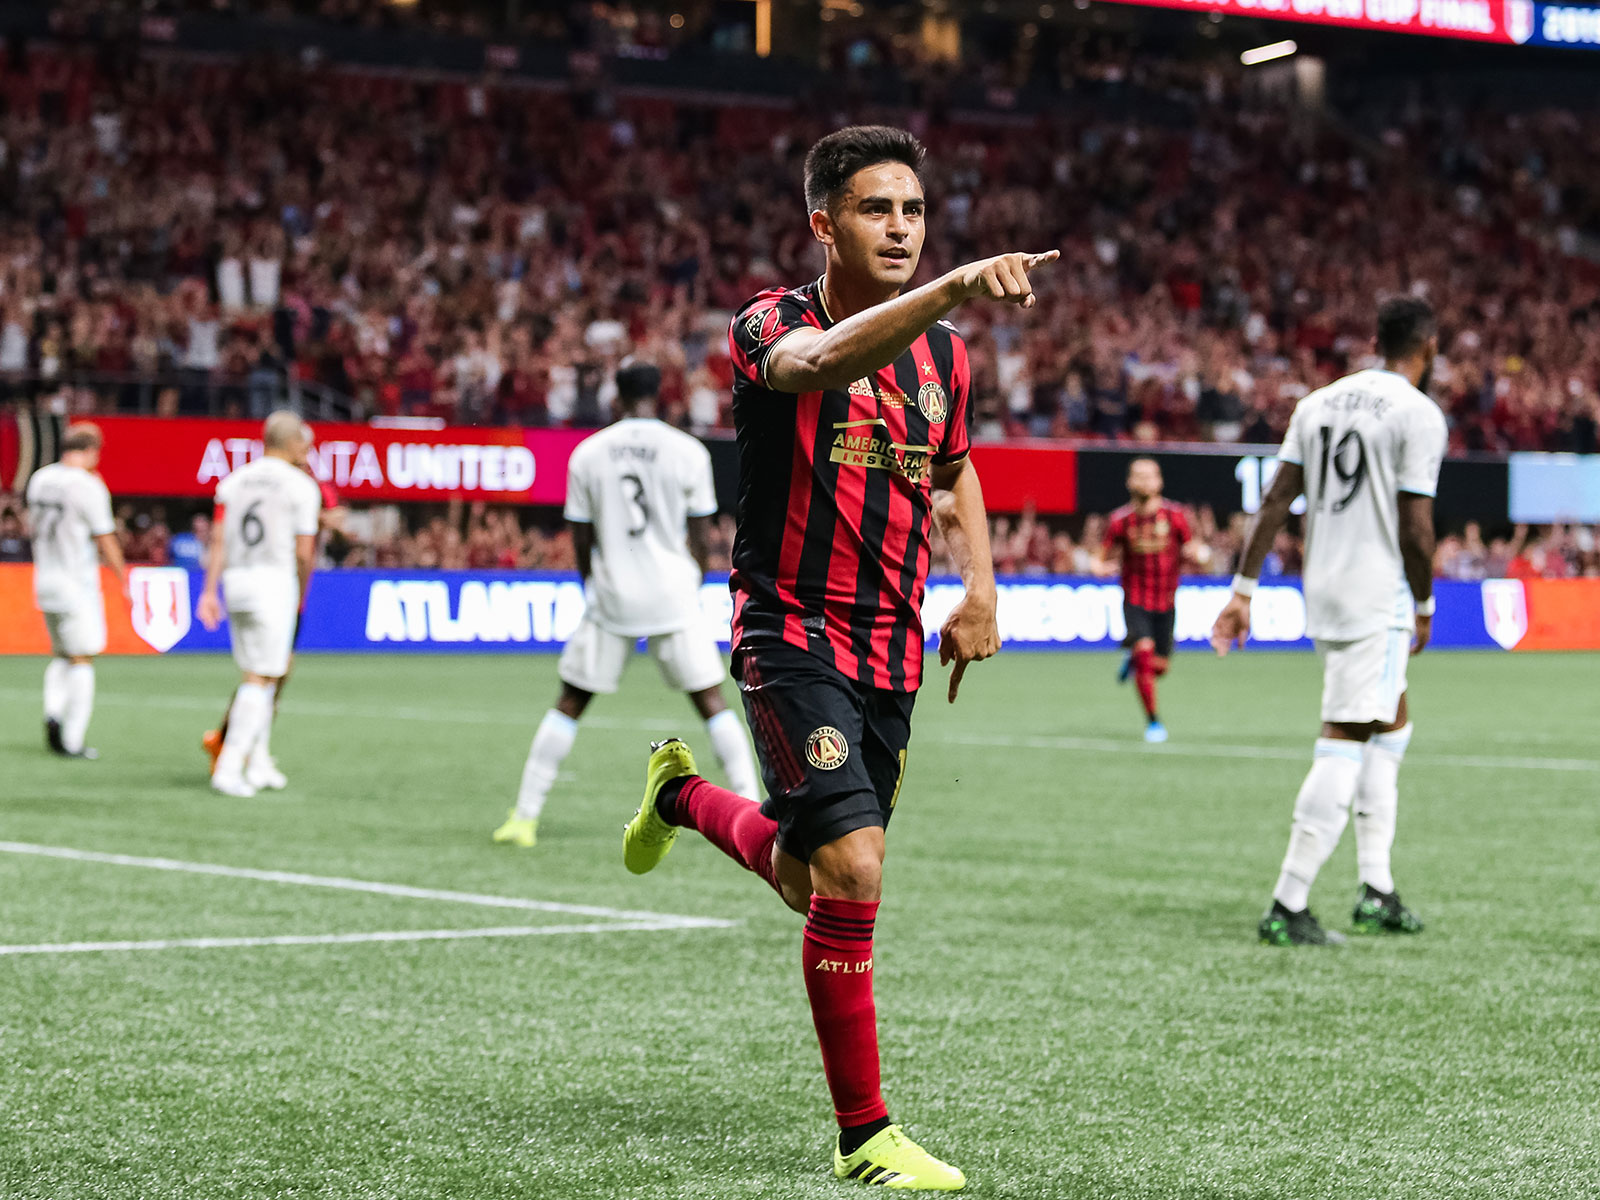 Pity Martinez scores in the U.S. Open Cup final